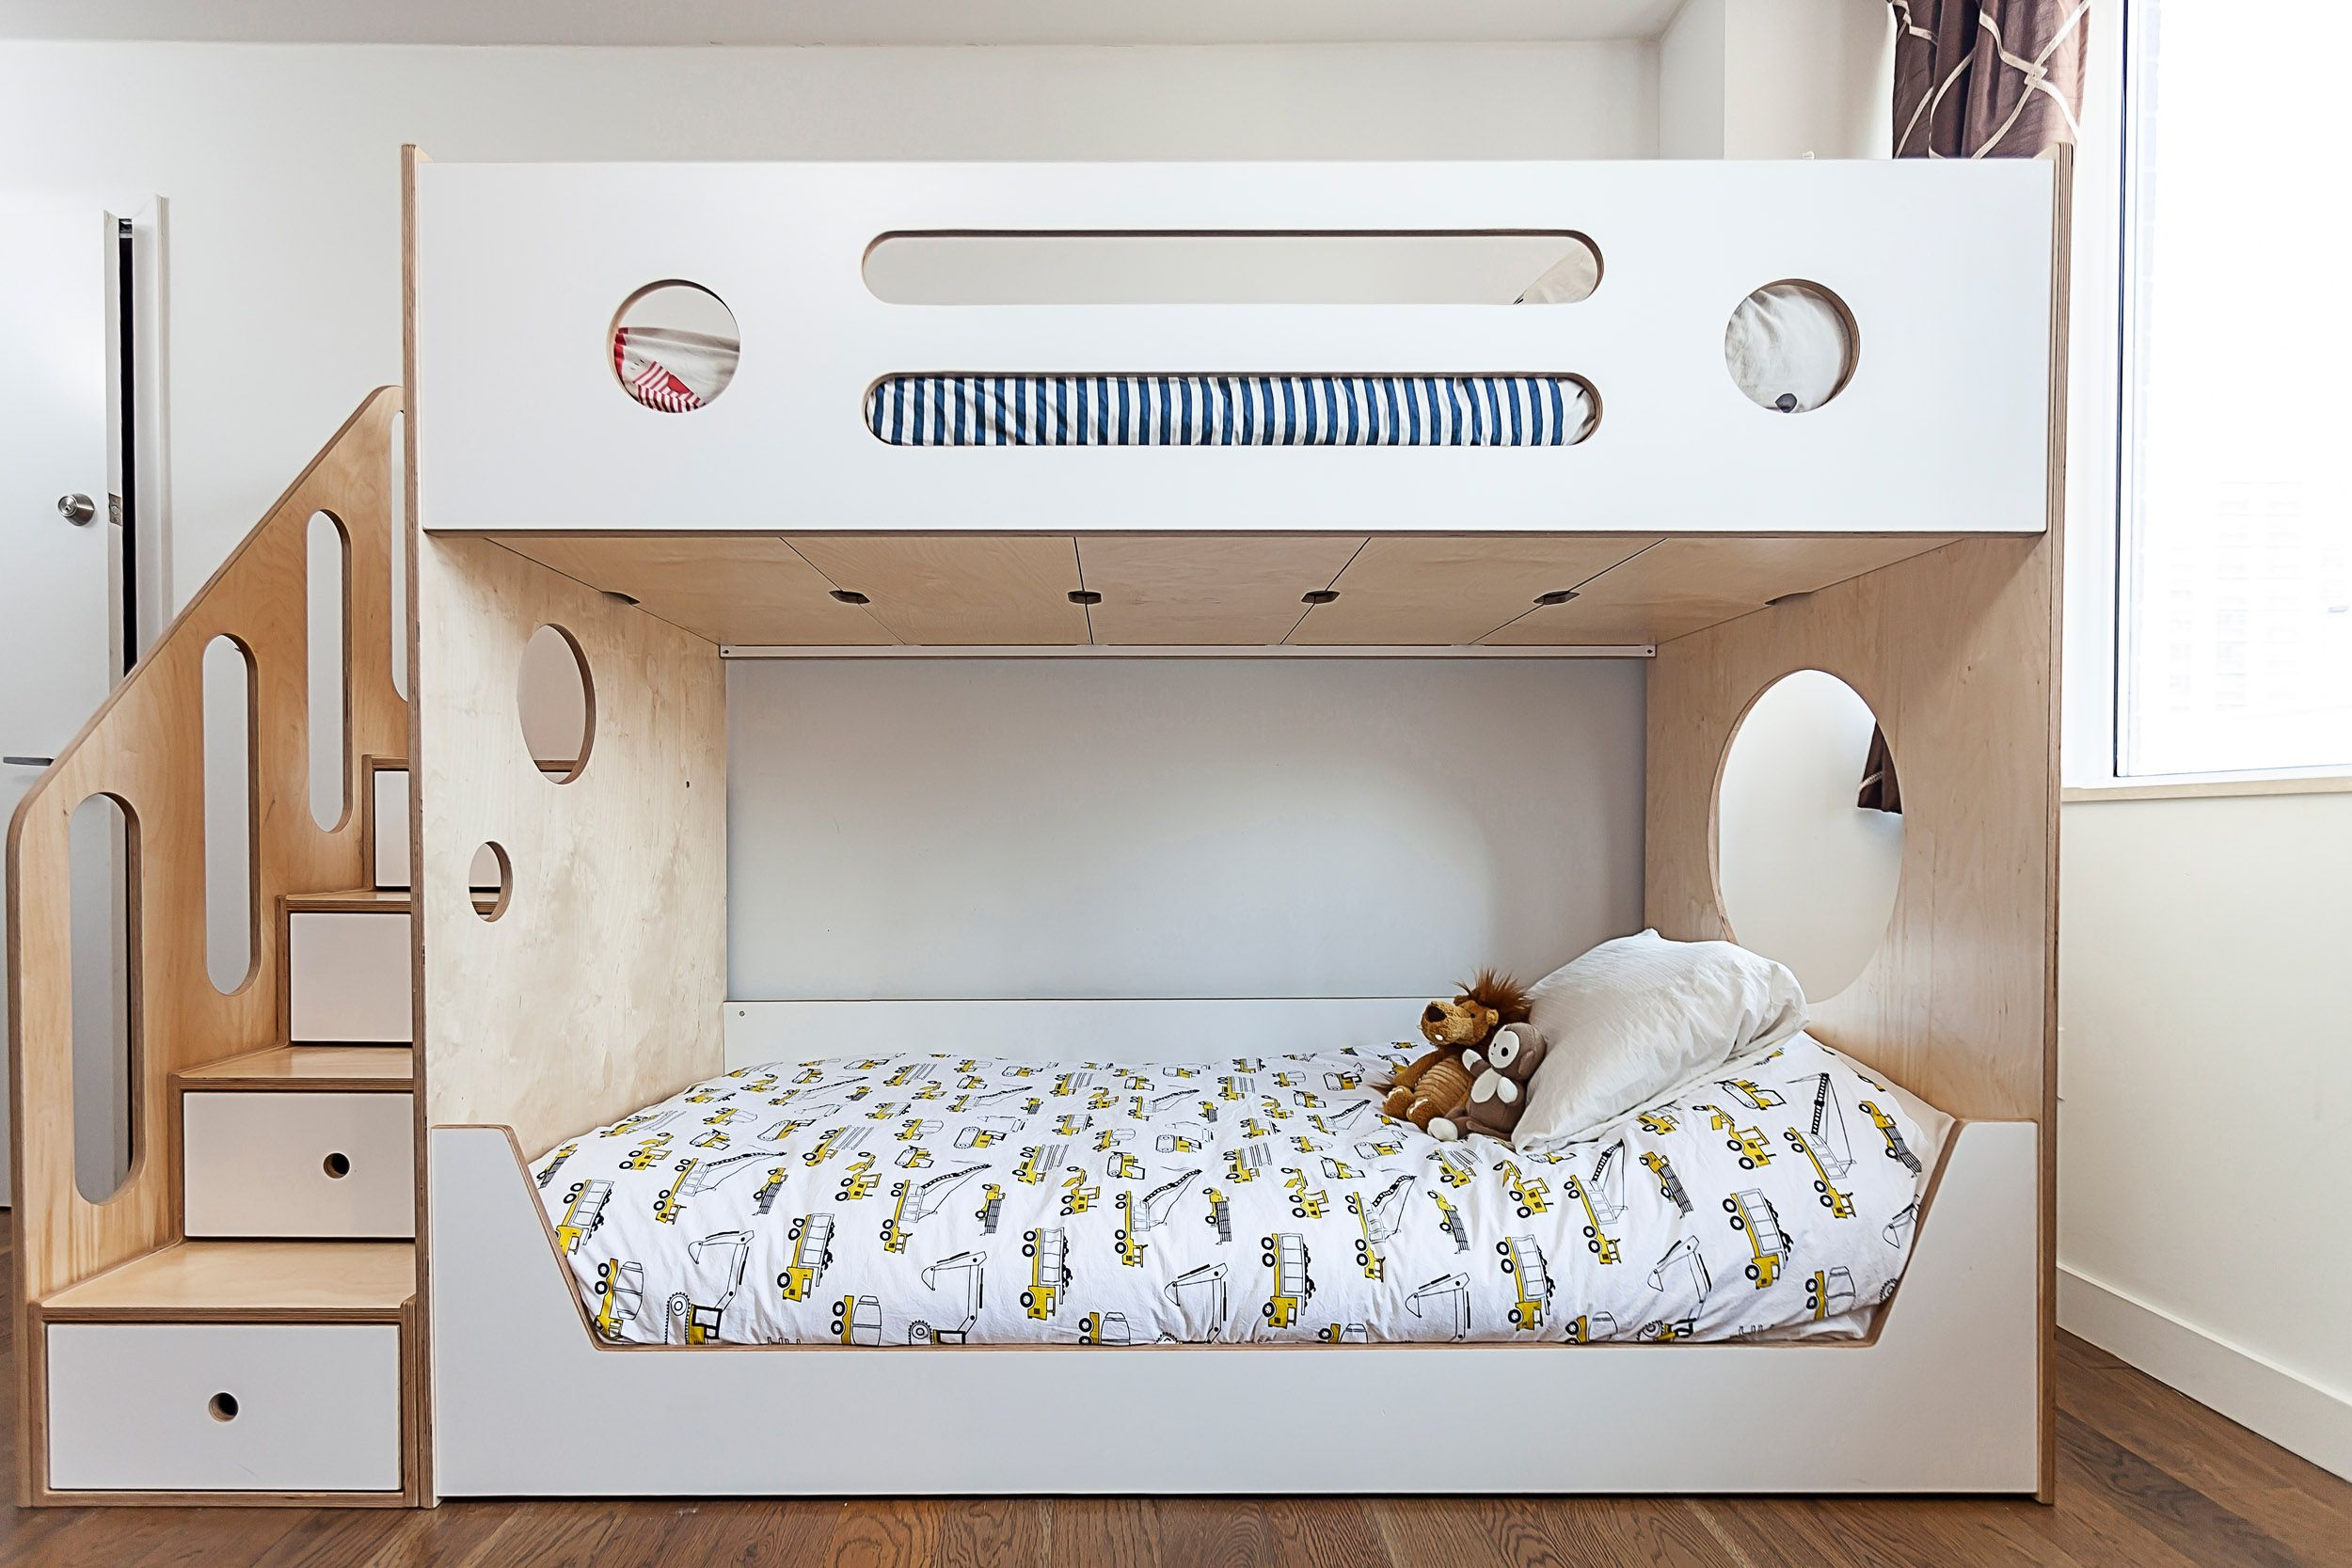 A Simple Bunk Bed With Storage Stairs It S Tried And True Because It Works Custom Cutouts Keep This Classic Piece F Bunk Beds Kids Bunk Beds Modern Bunk Beds